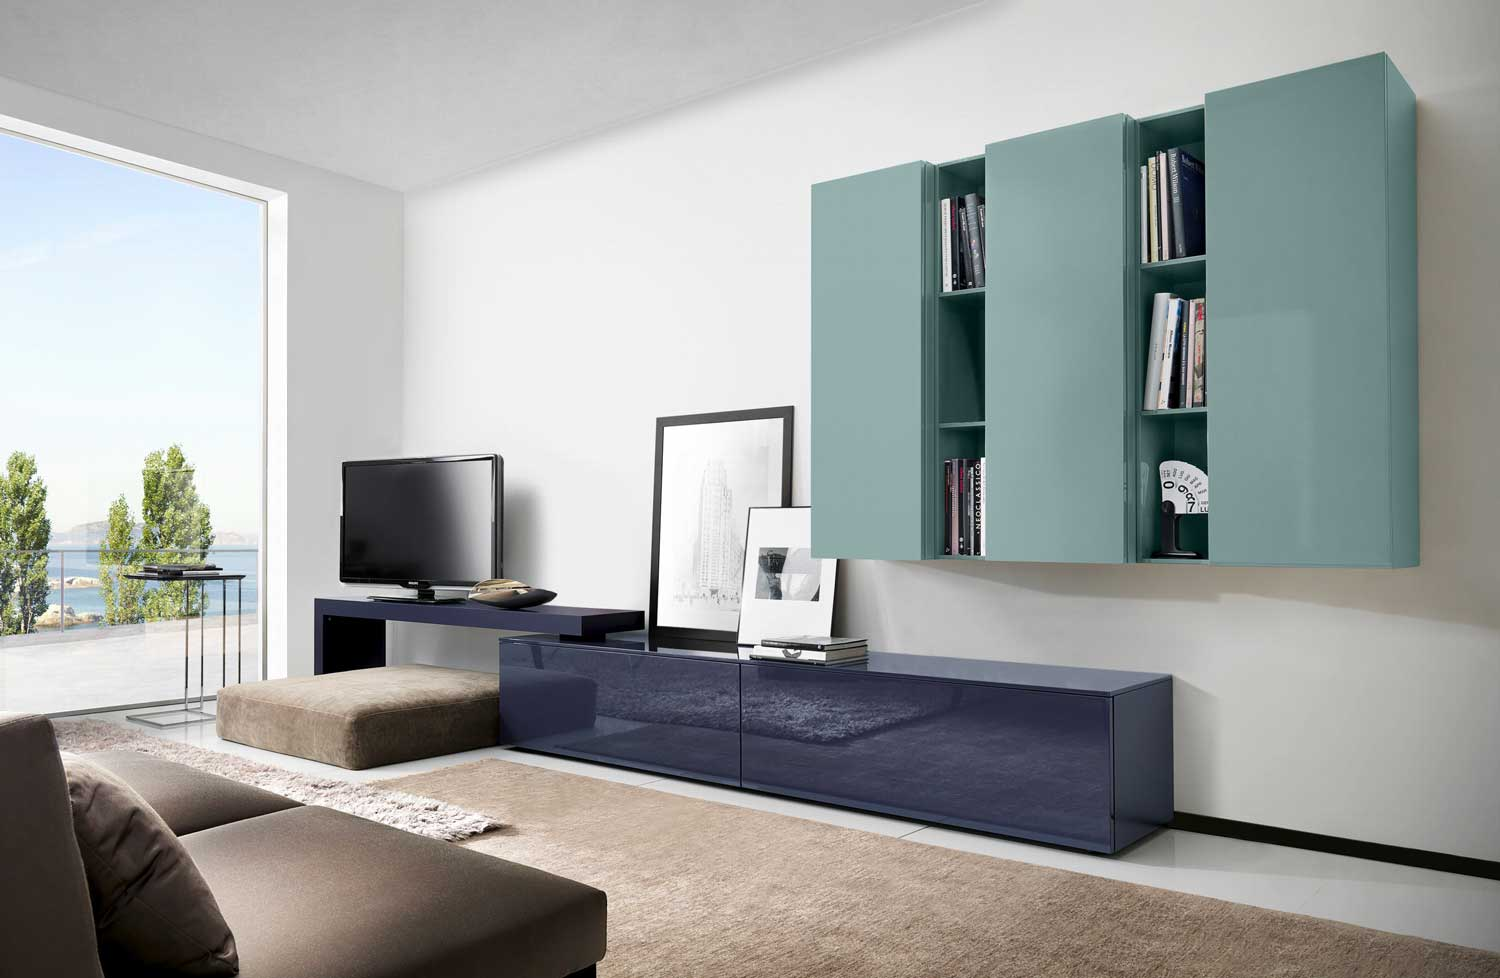 CEREZO-meubles-decoration-amenagement-interieur-design-contemporain ...